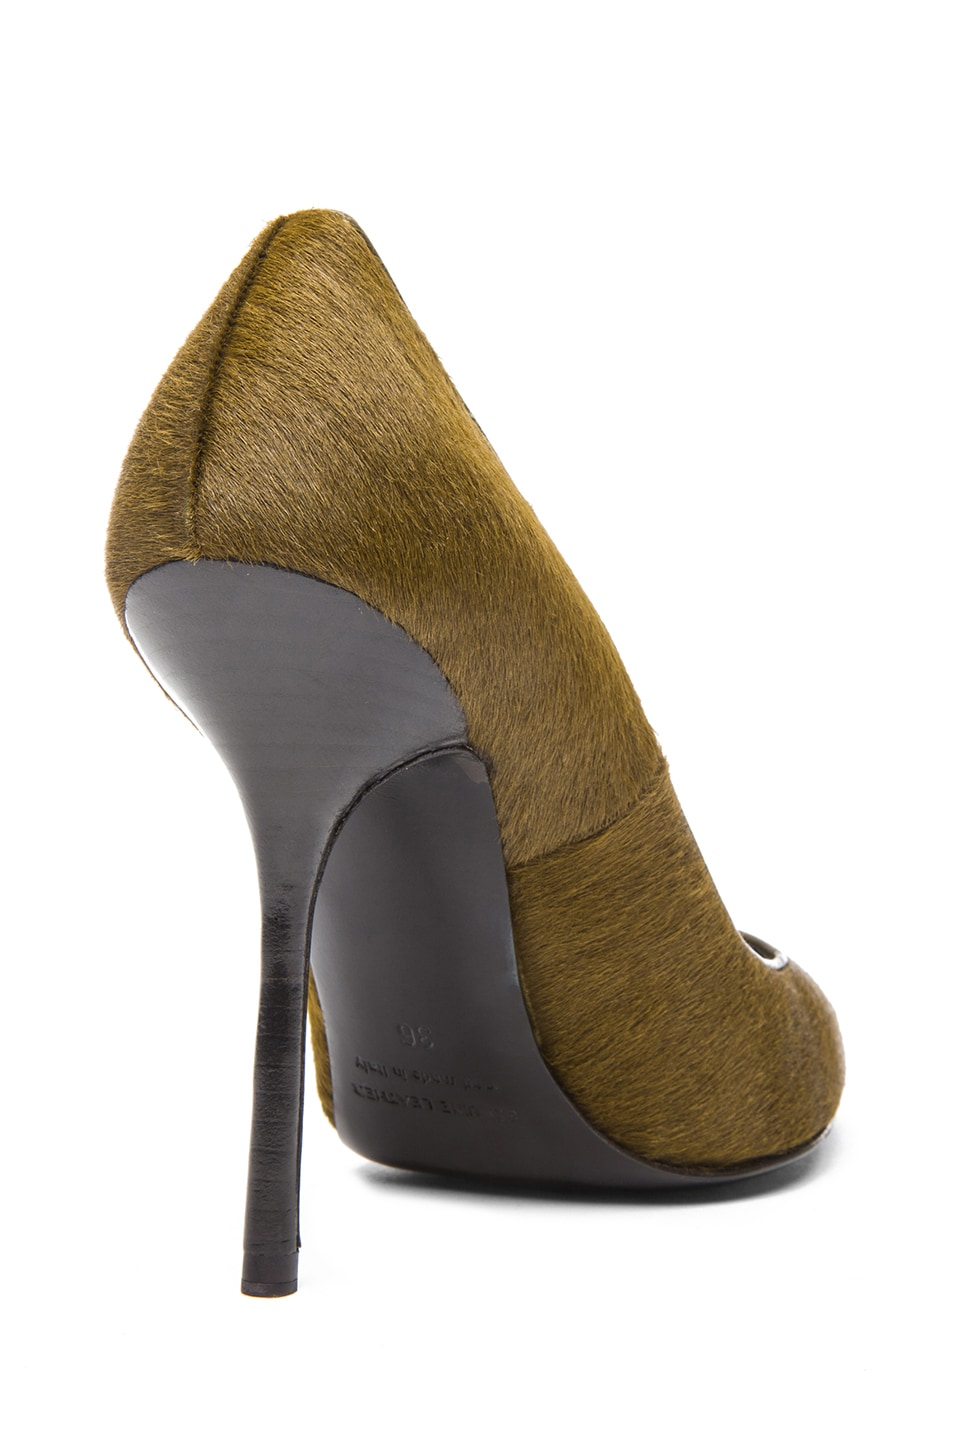 Image 3 of Pierre Hardy Calf Hair Pumps in Kaki